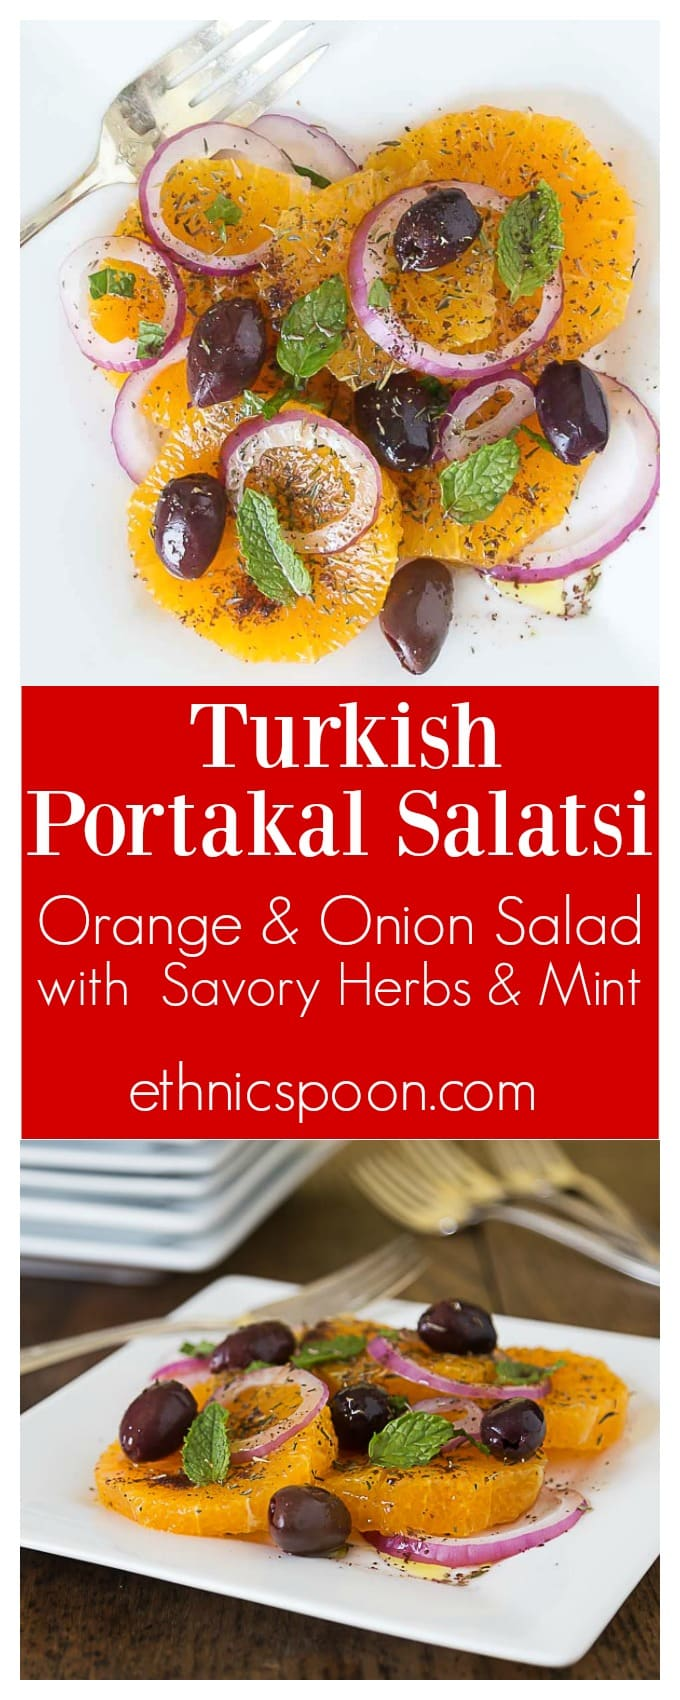 You will love this salad with bright herbs & citrus flavors! Turkish Portakal Salatsi: A salad with orange, onion, thyme, sumac and mint. | ethnicspoon.com